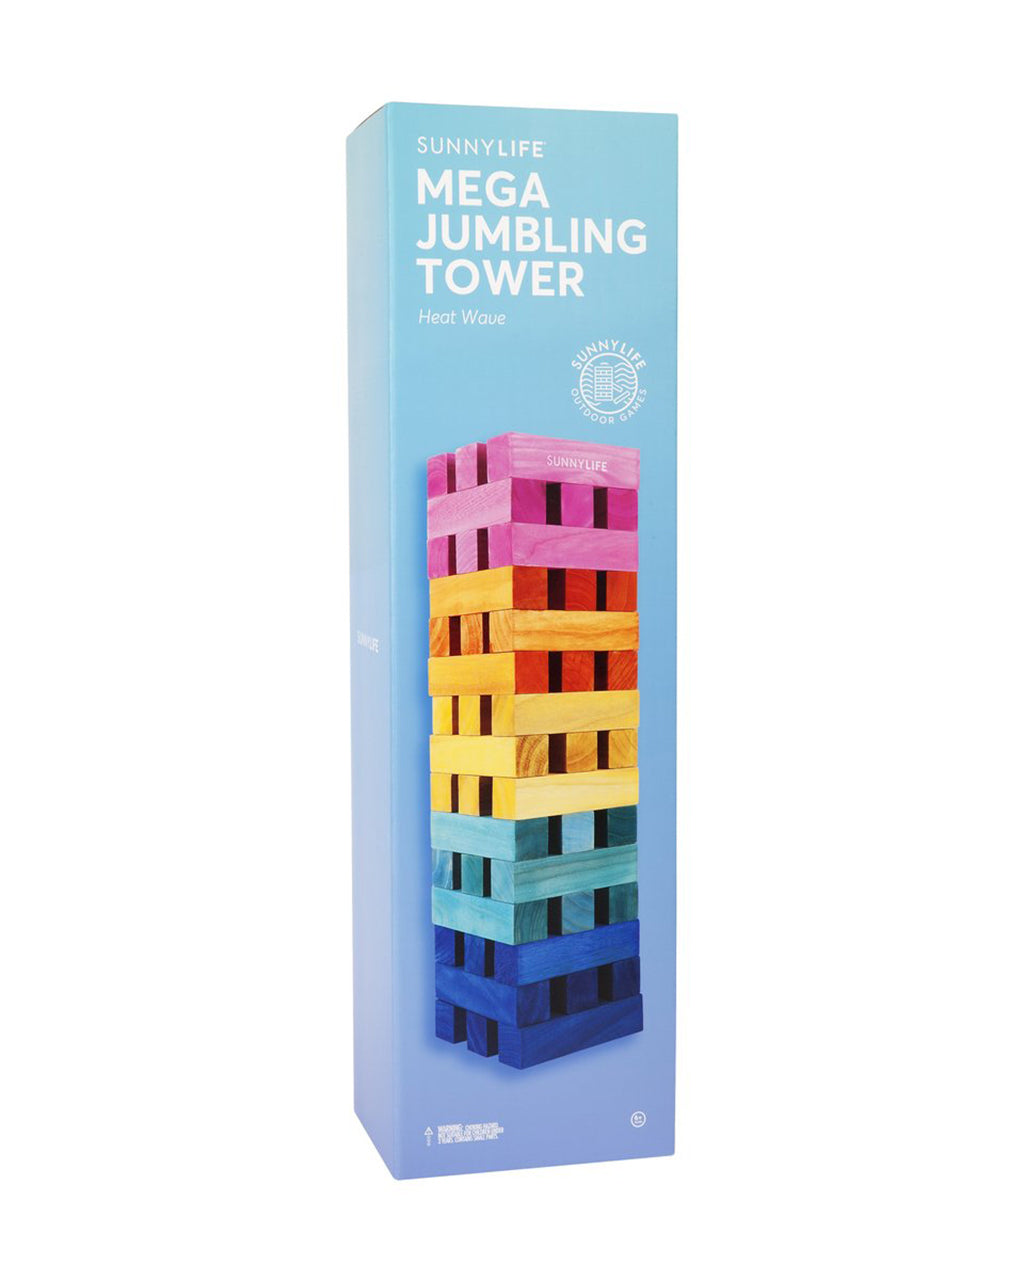 mega tower blocks shown in packaging